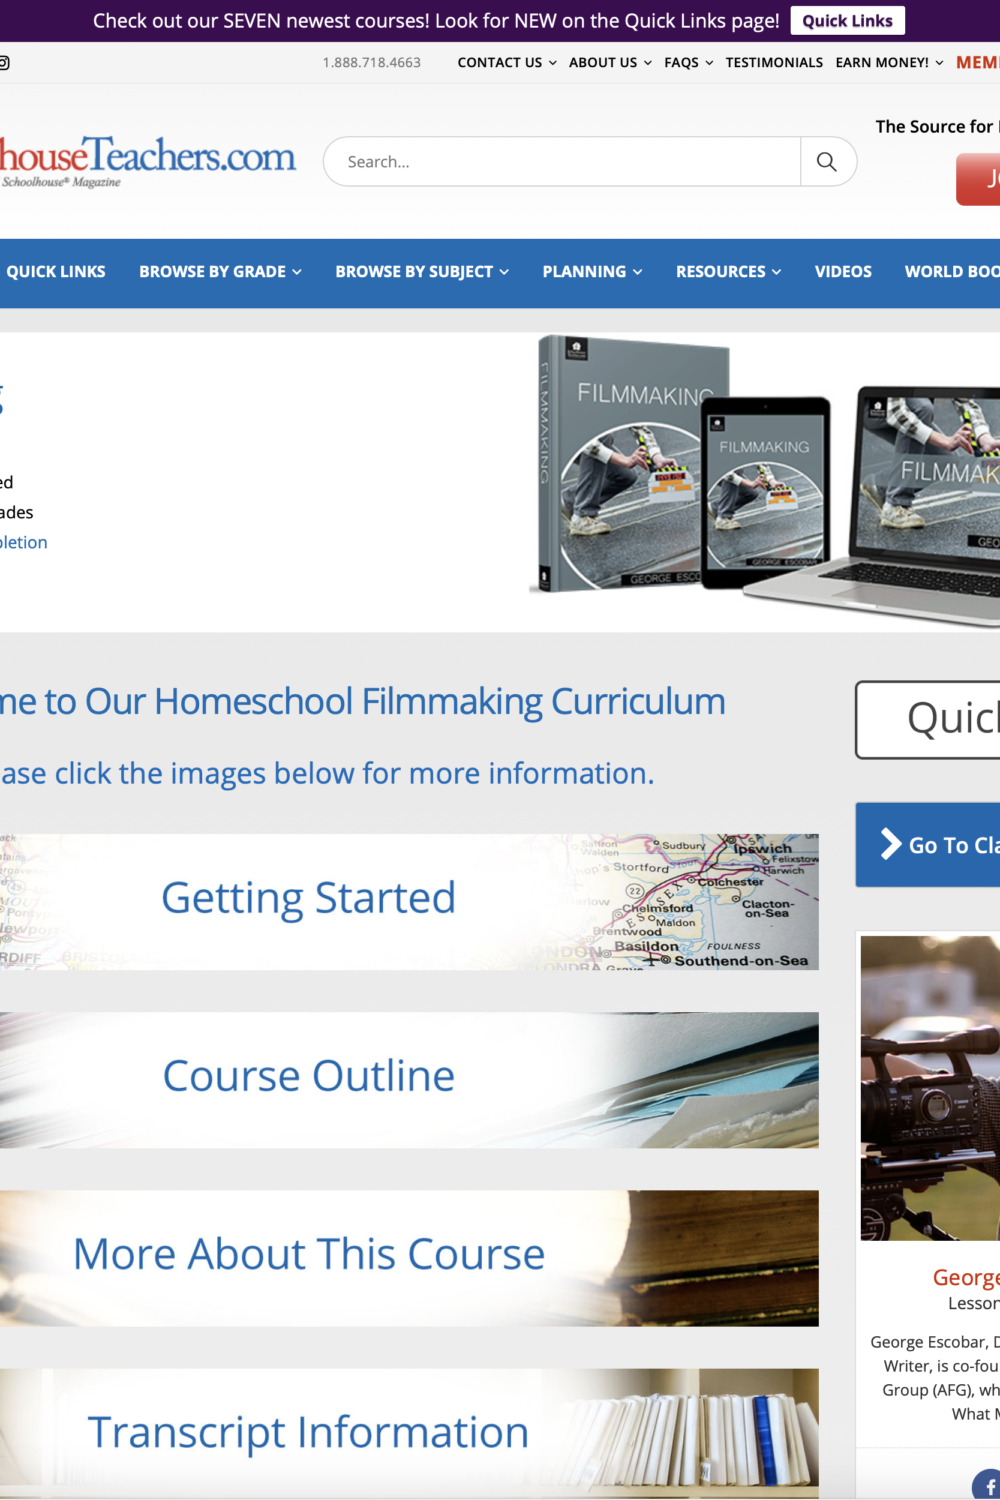 schoolhouseteachers-online courses-homeschool